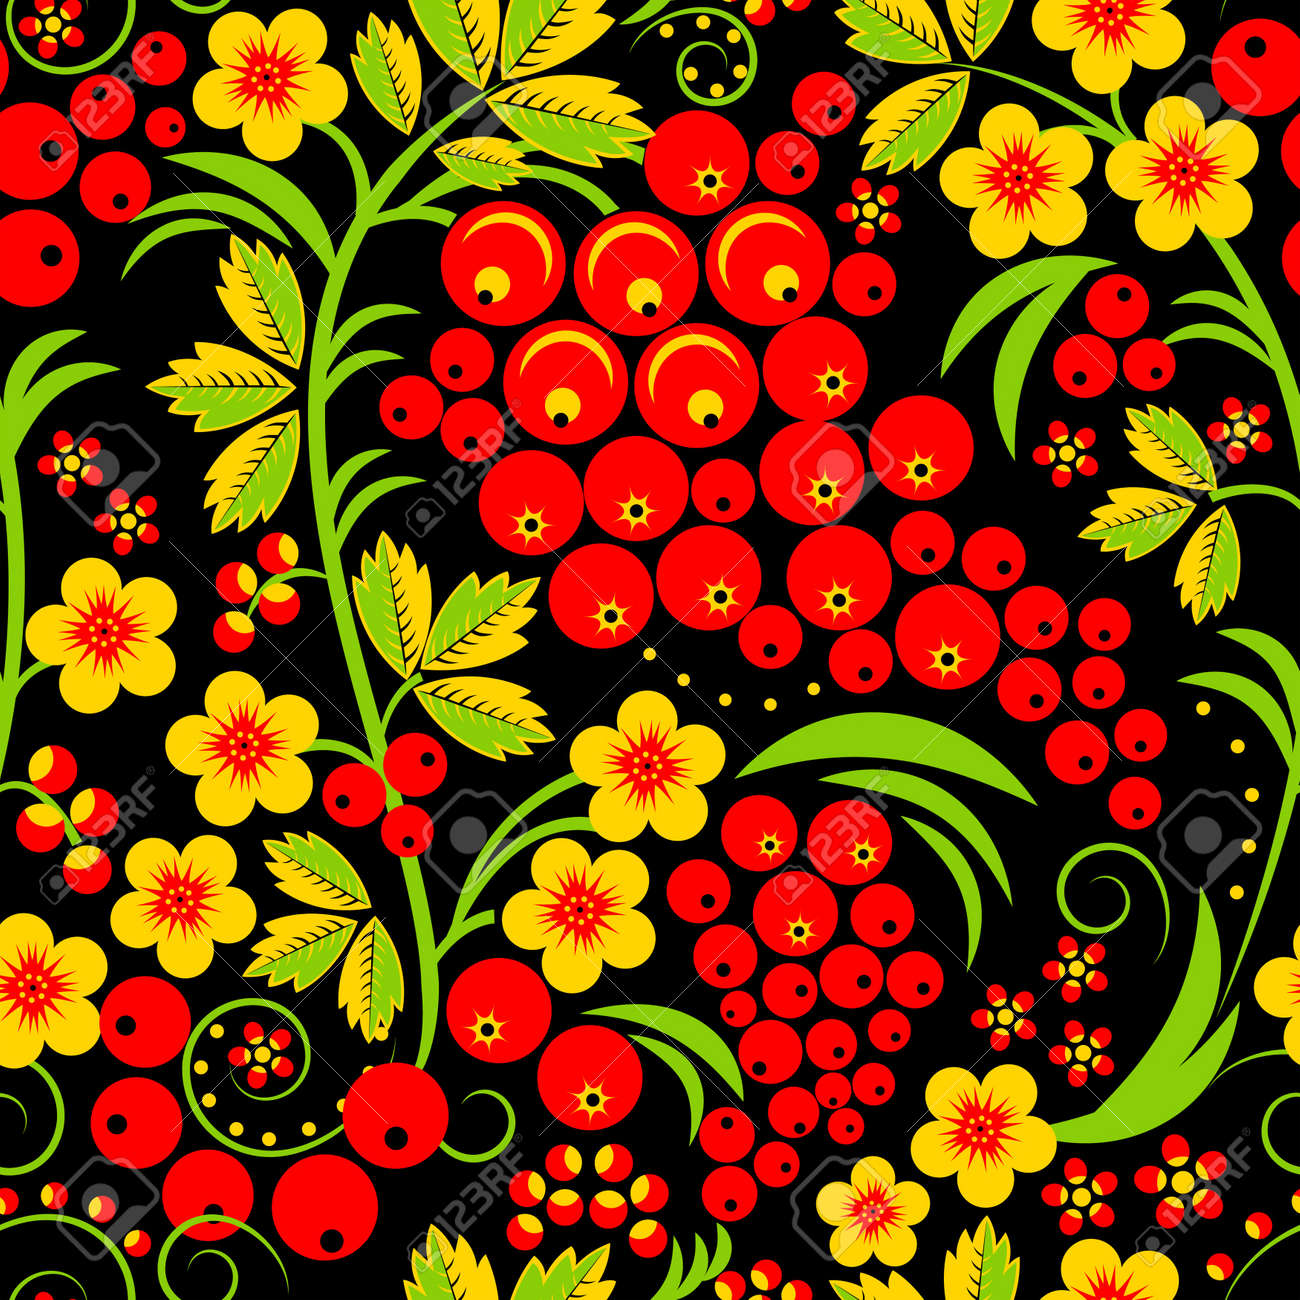 15487668-Style-traditionnel-Hohloma-russe-seamless-pattern-Vector-illustration--Banque-d'images